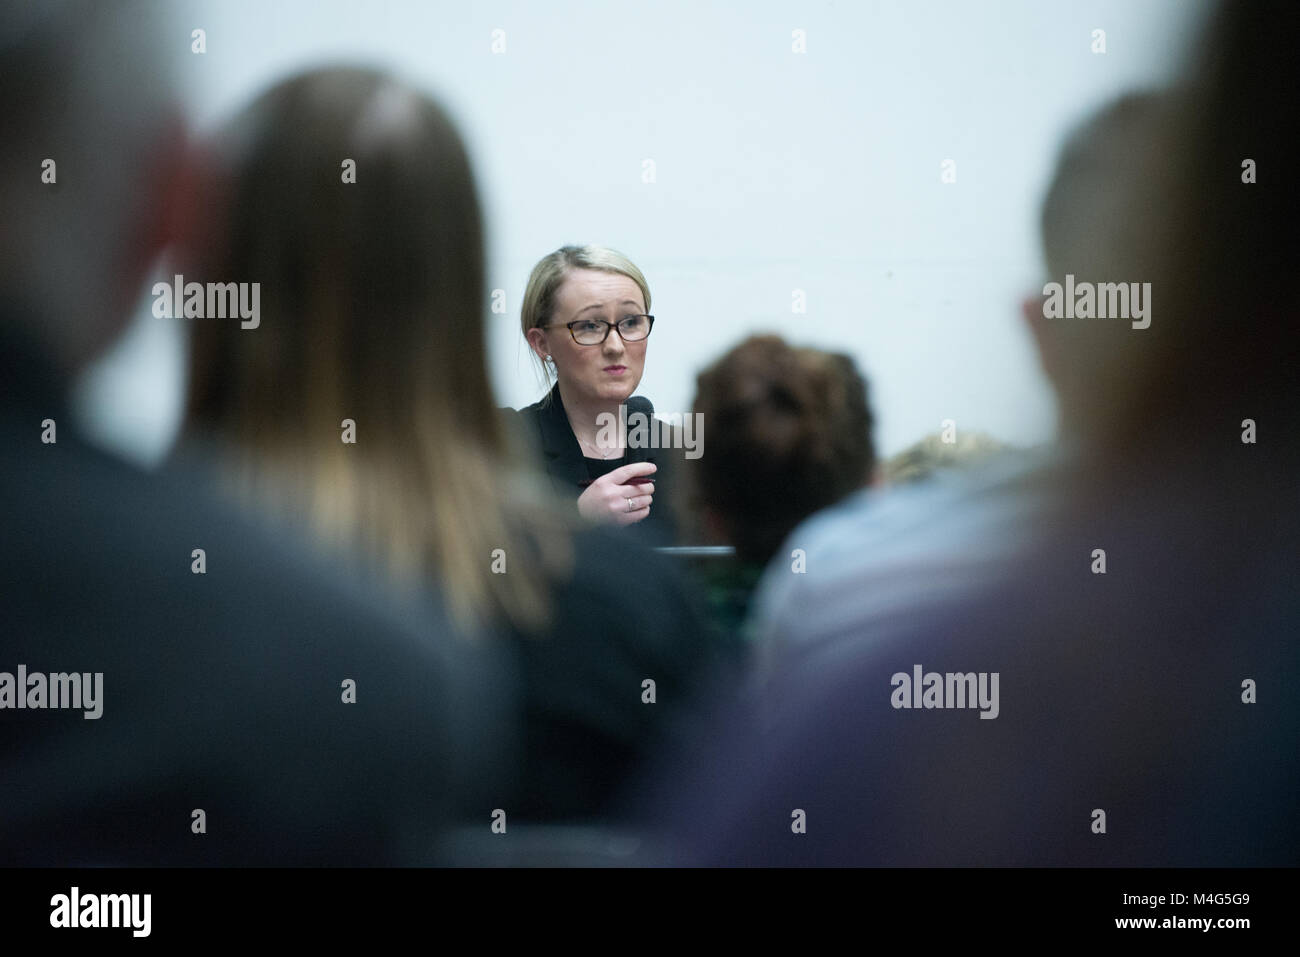 Manchester, UK. 16th February, 2018. Rebecca Long-Bailey MP, Member of Parliament for Salford and Eccles and shadow Stock Photo